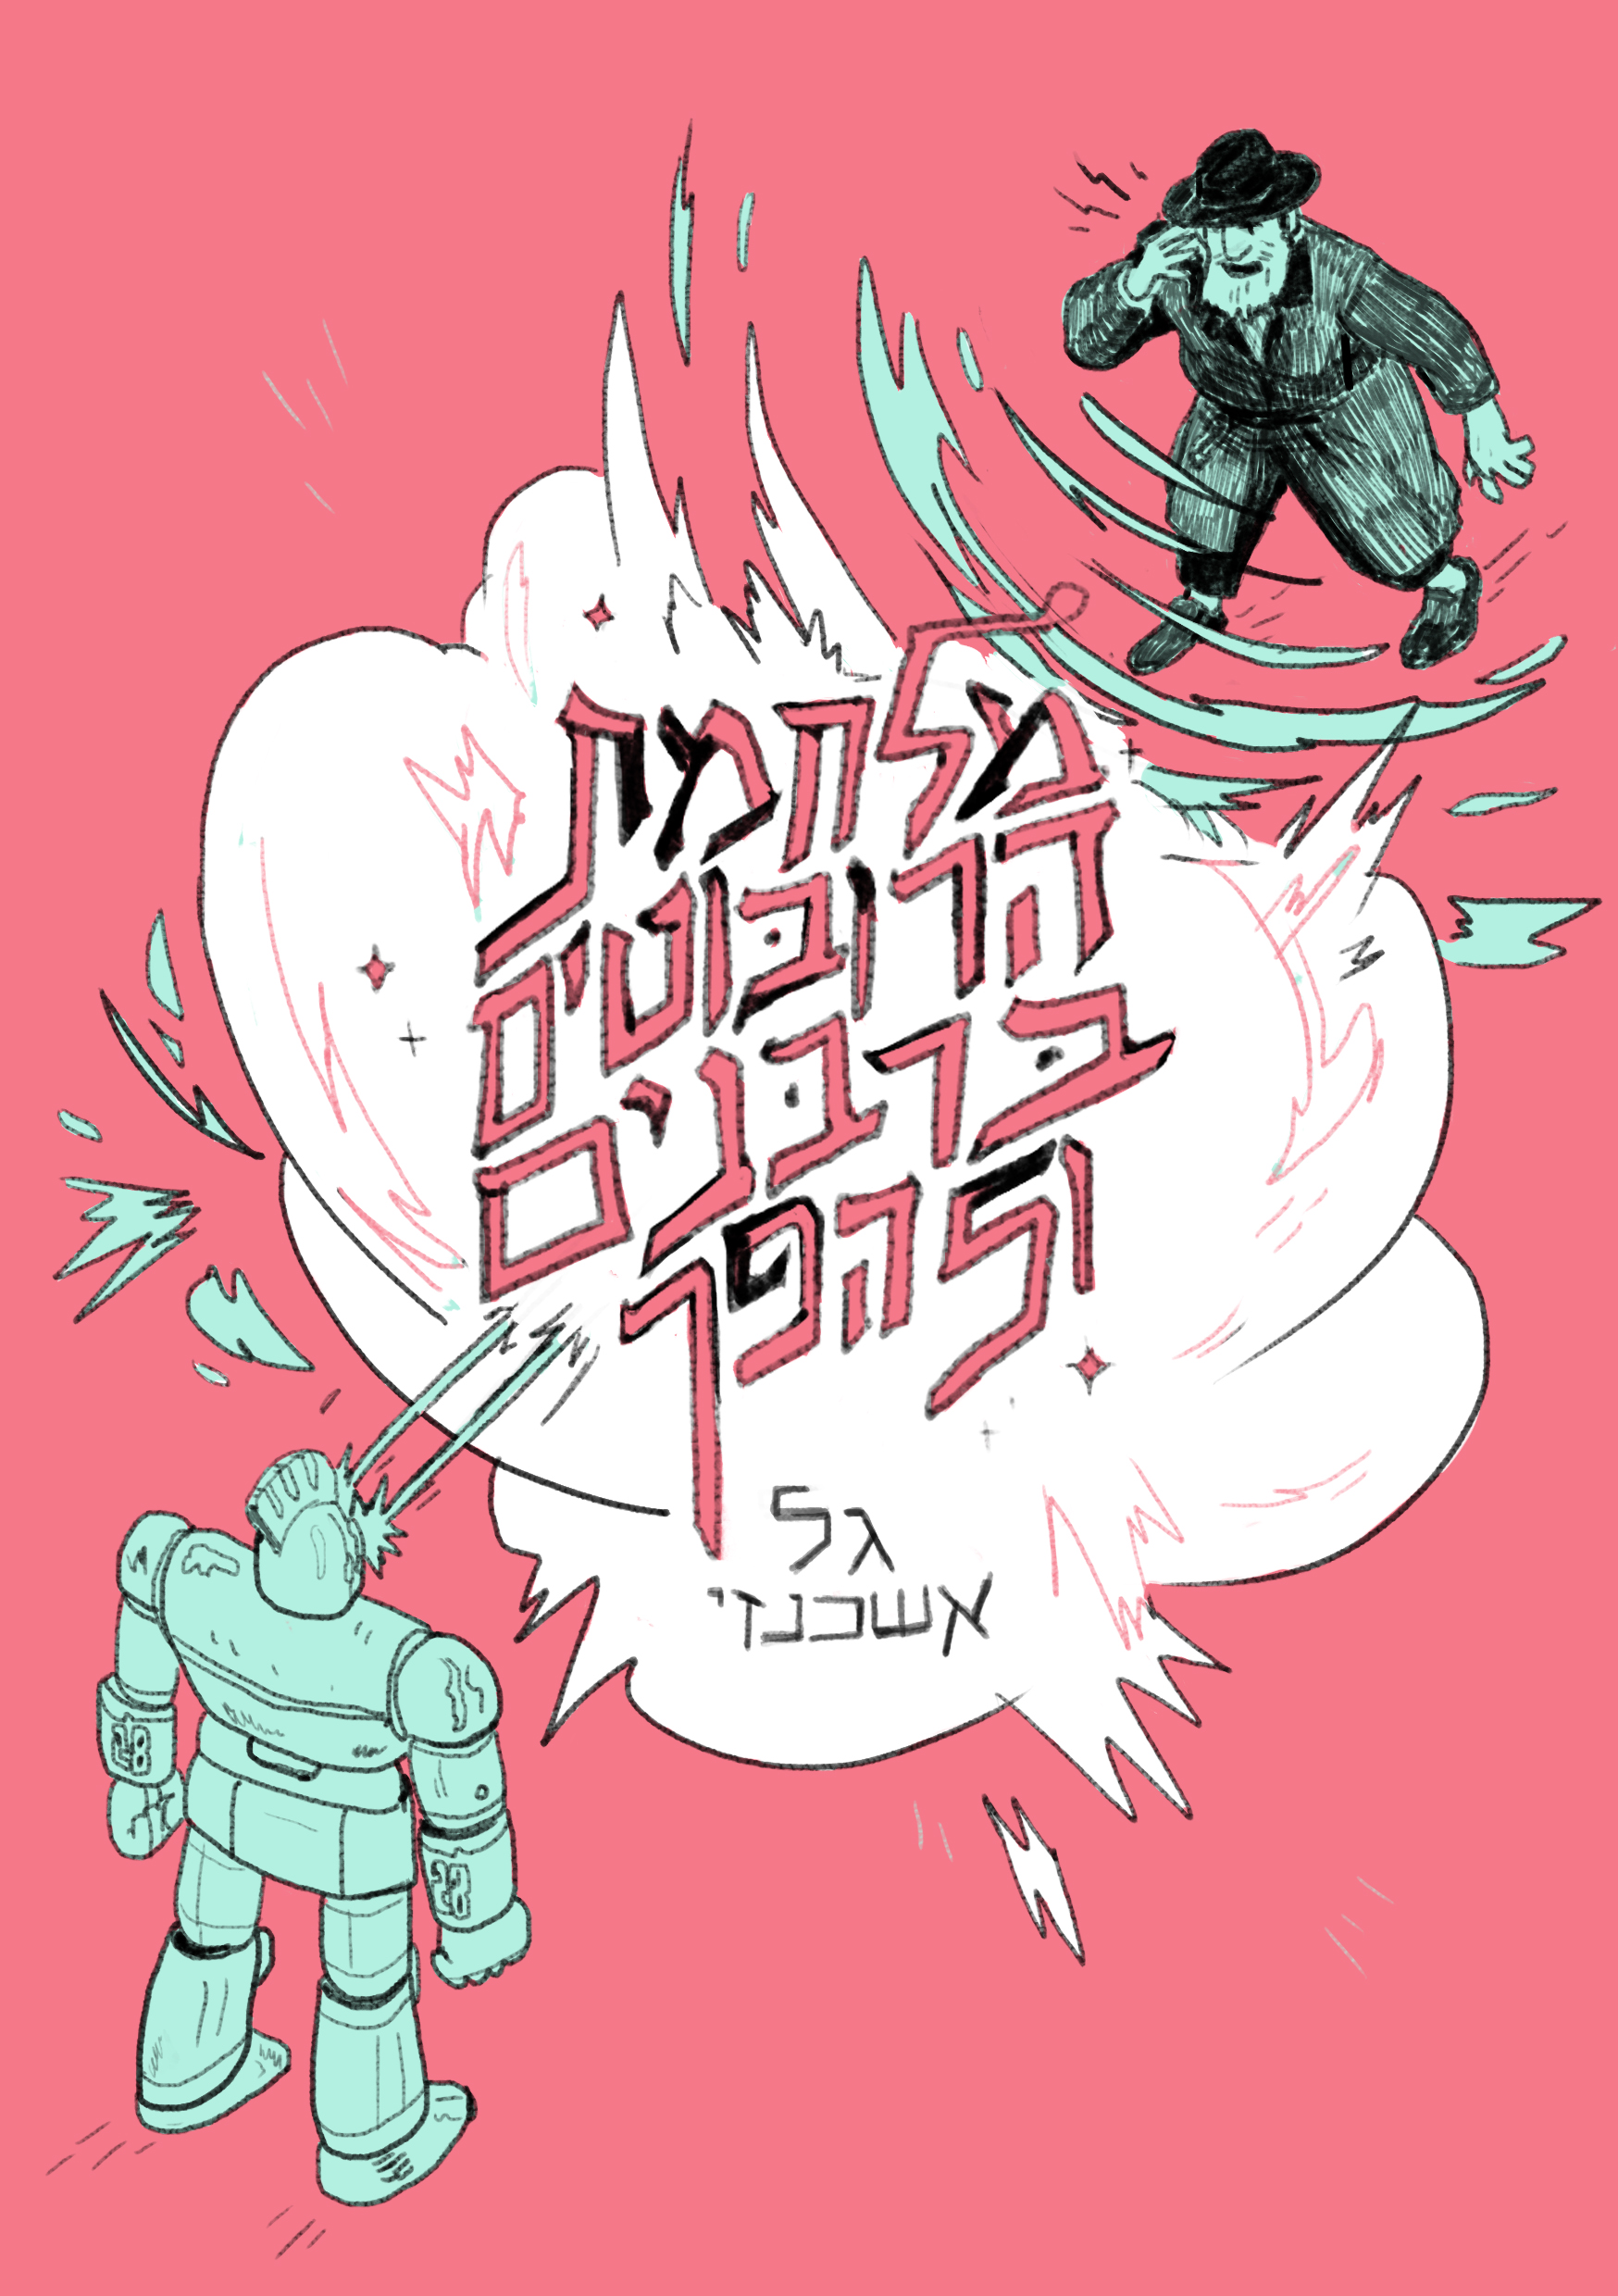 Robots vs Rabbis comic